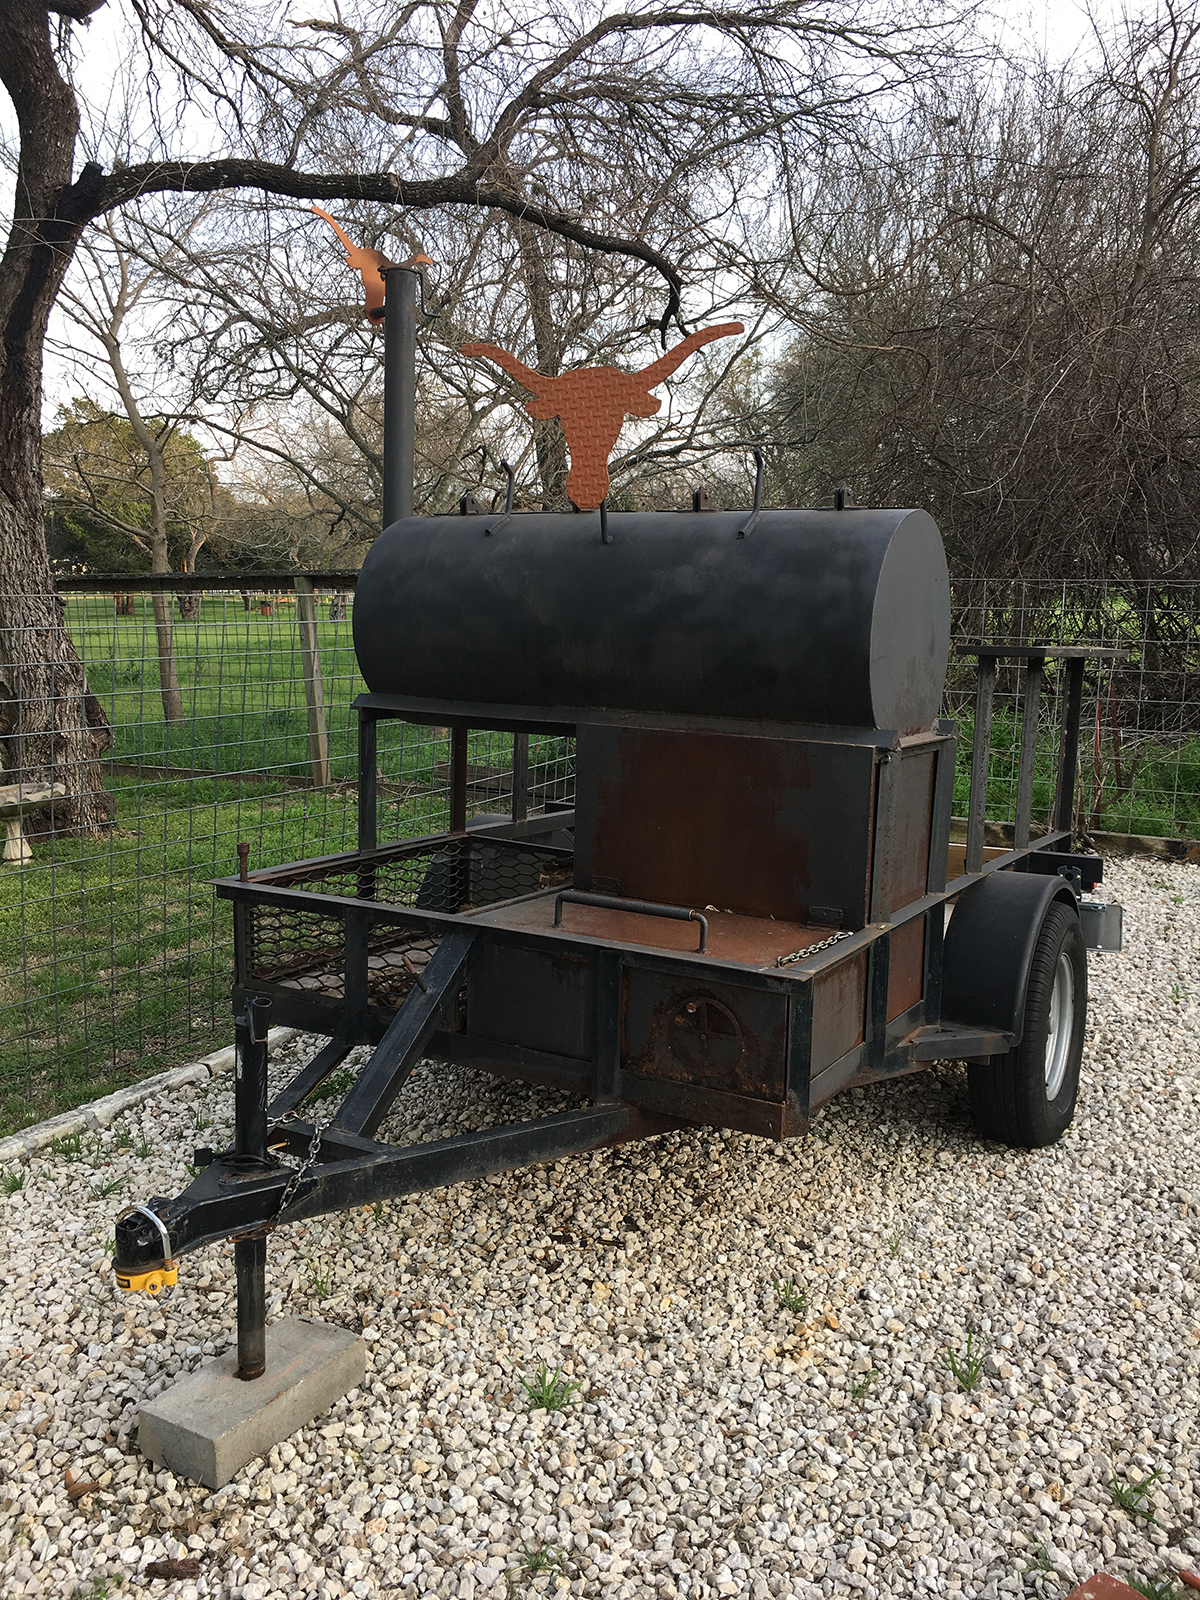 Loanables Bbq Smoker Rental Located In Austin Tx